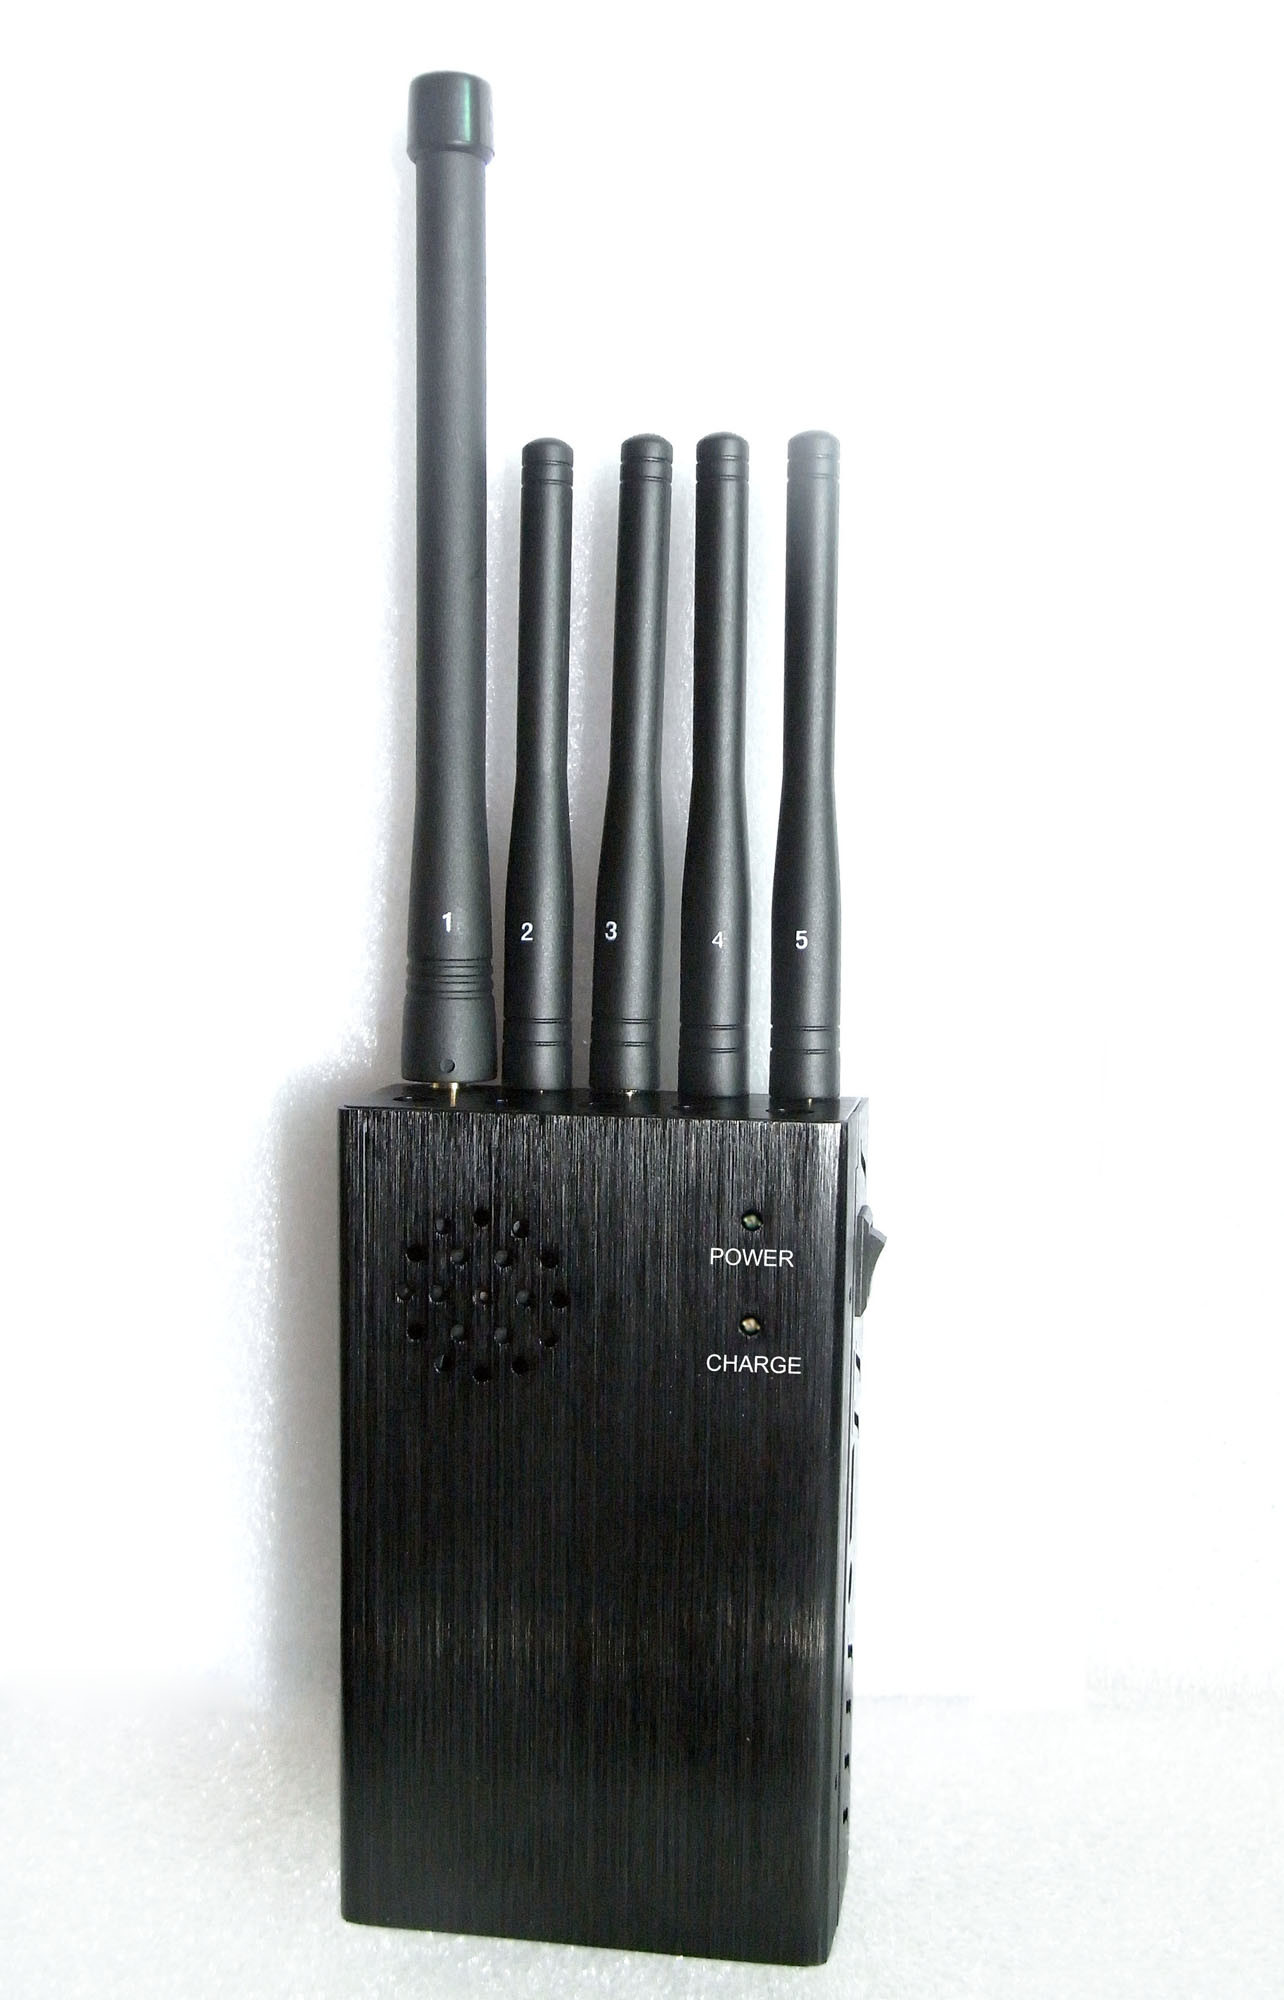 cellular signal jammer most powerful